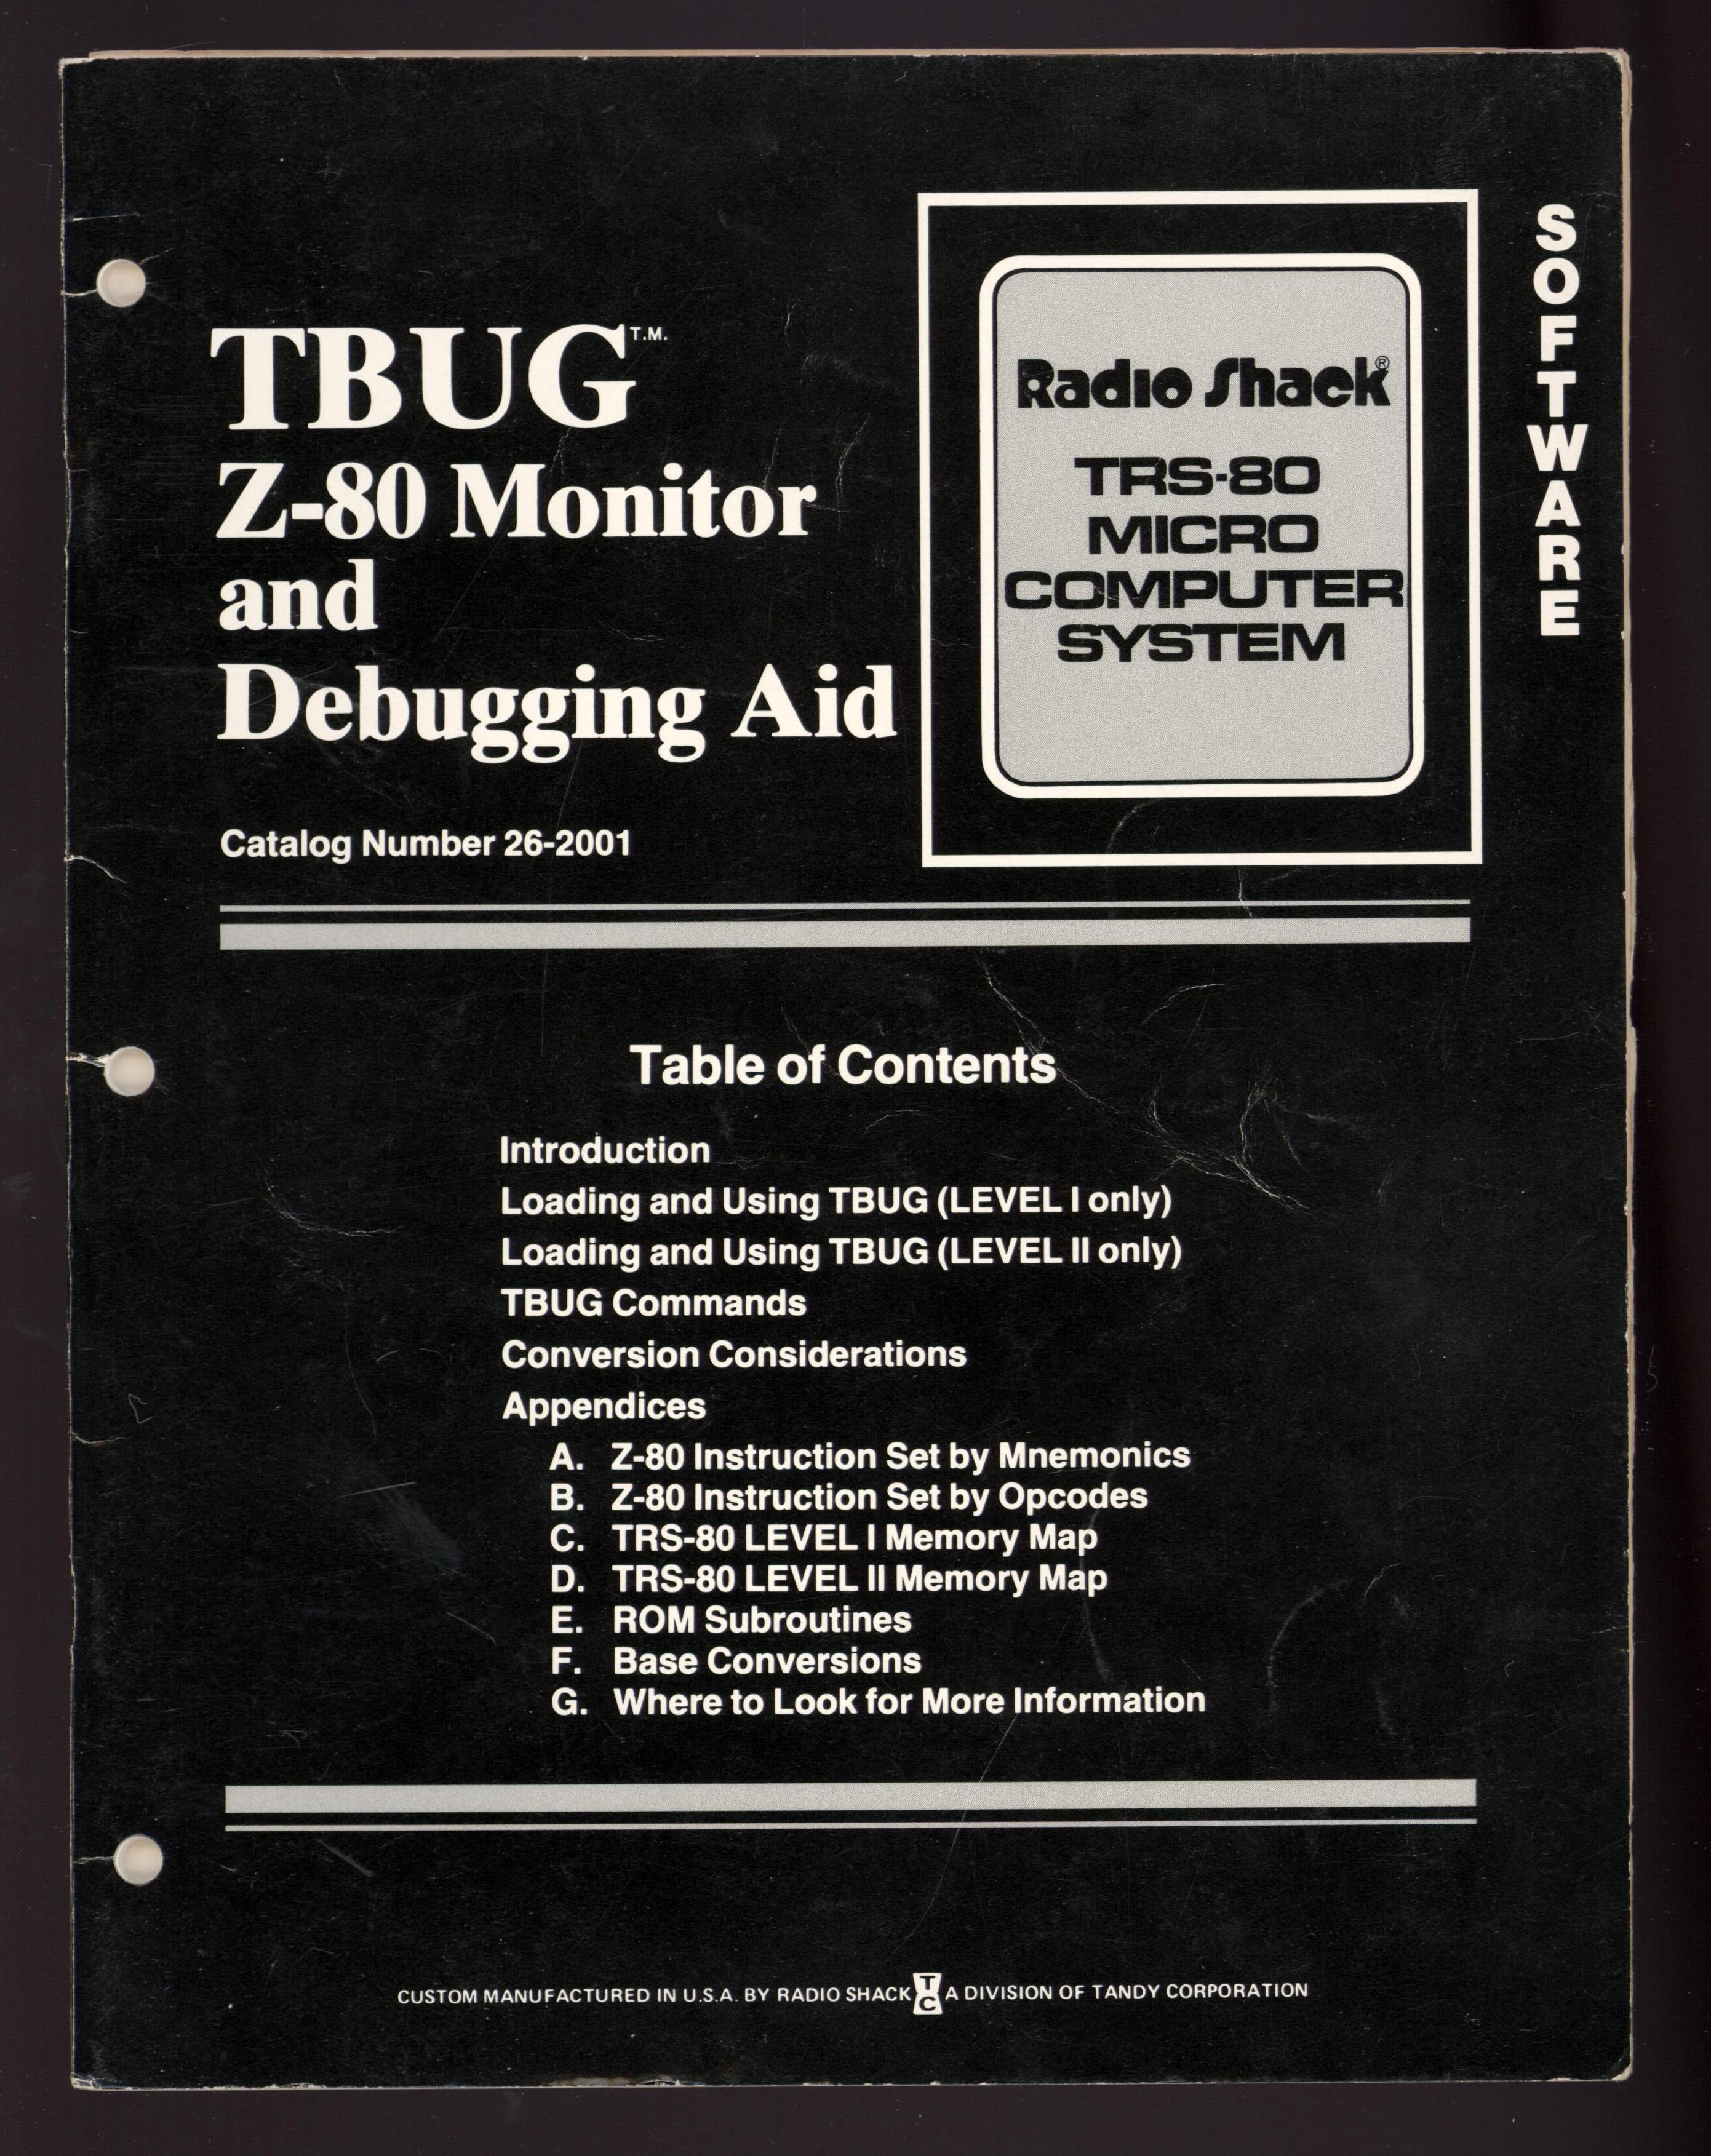 Image for TBUG Z-80 Monitor and Debugging Aid Catalog Number 26-2001 (Radio Shack TRS-80 Micro Computer System) FIRST EDITION